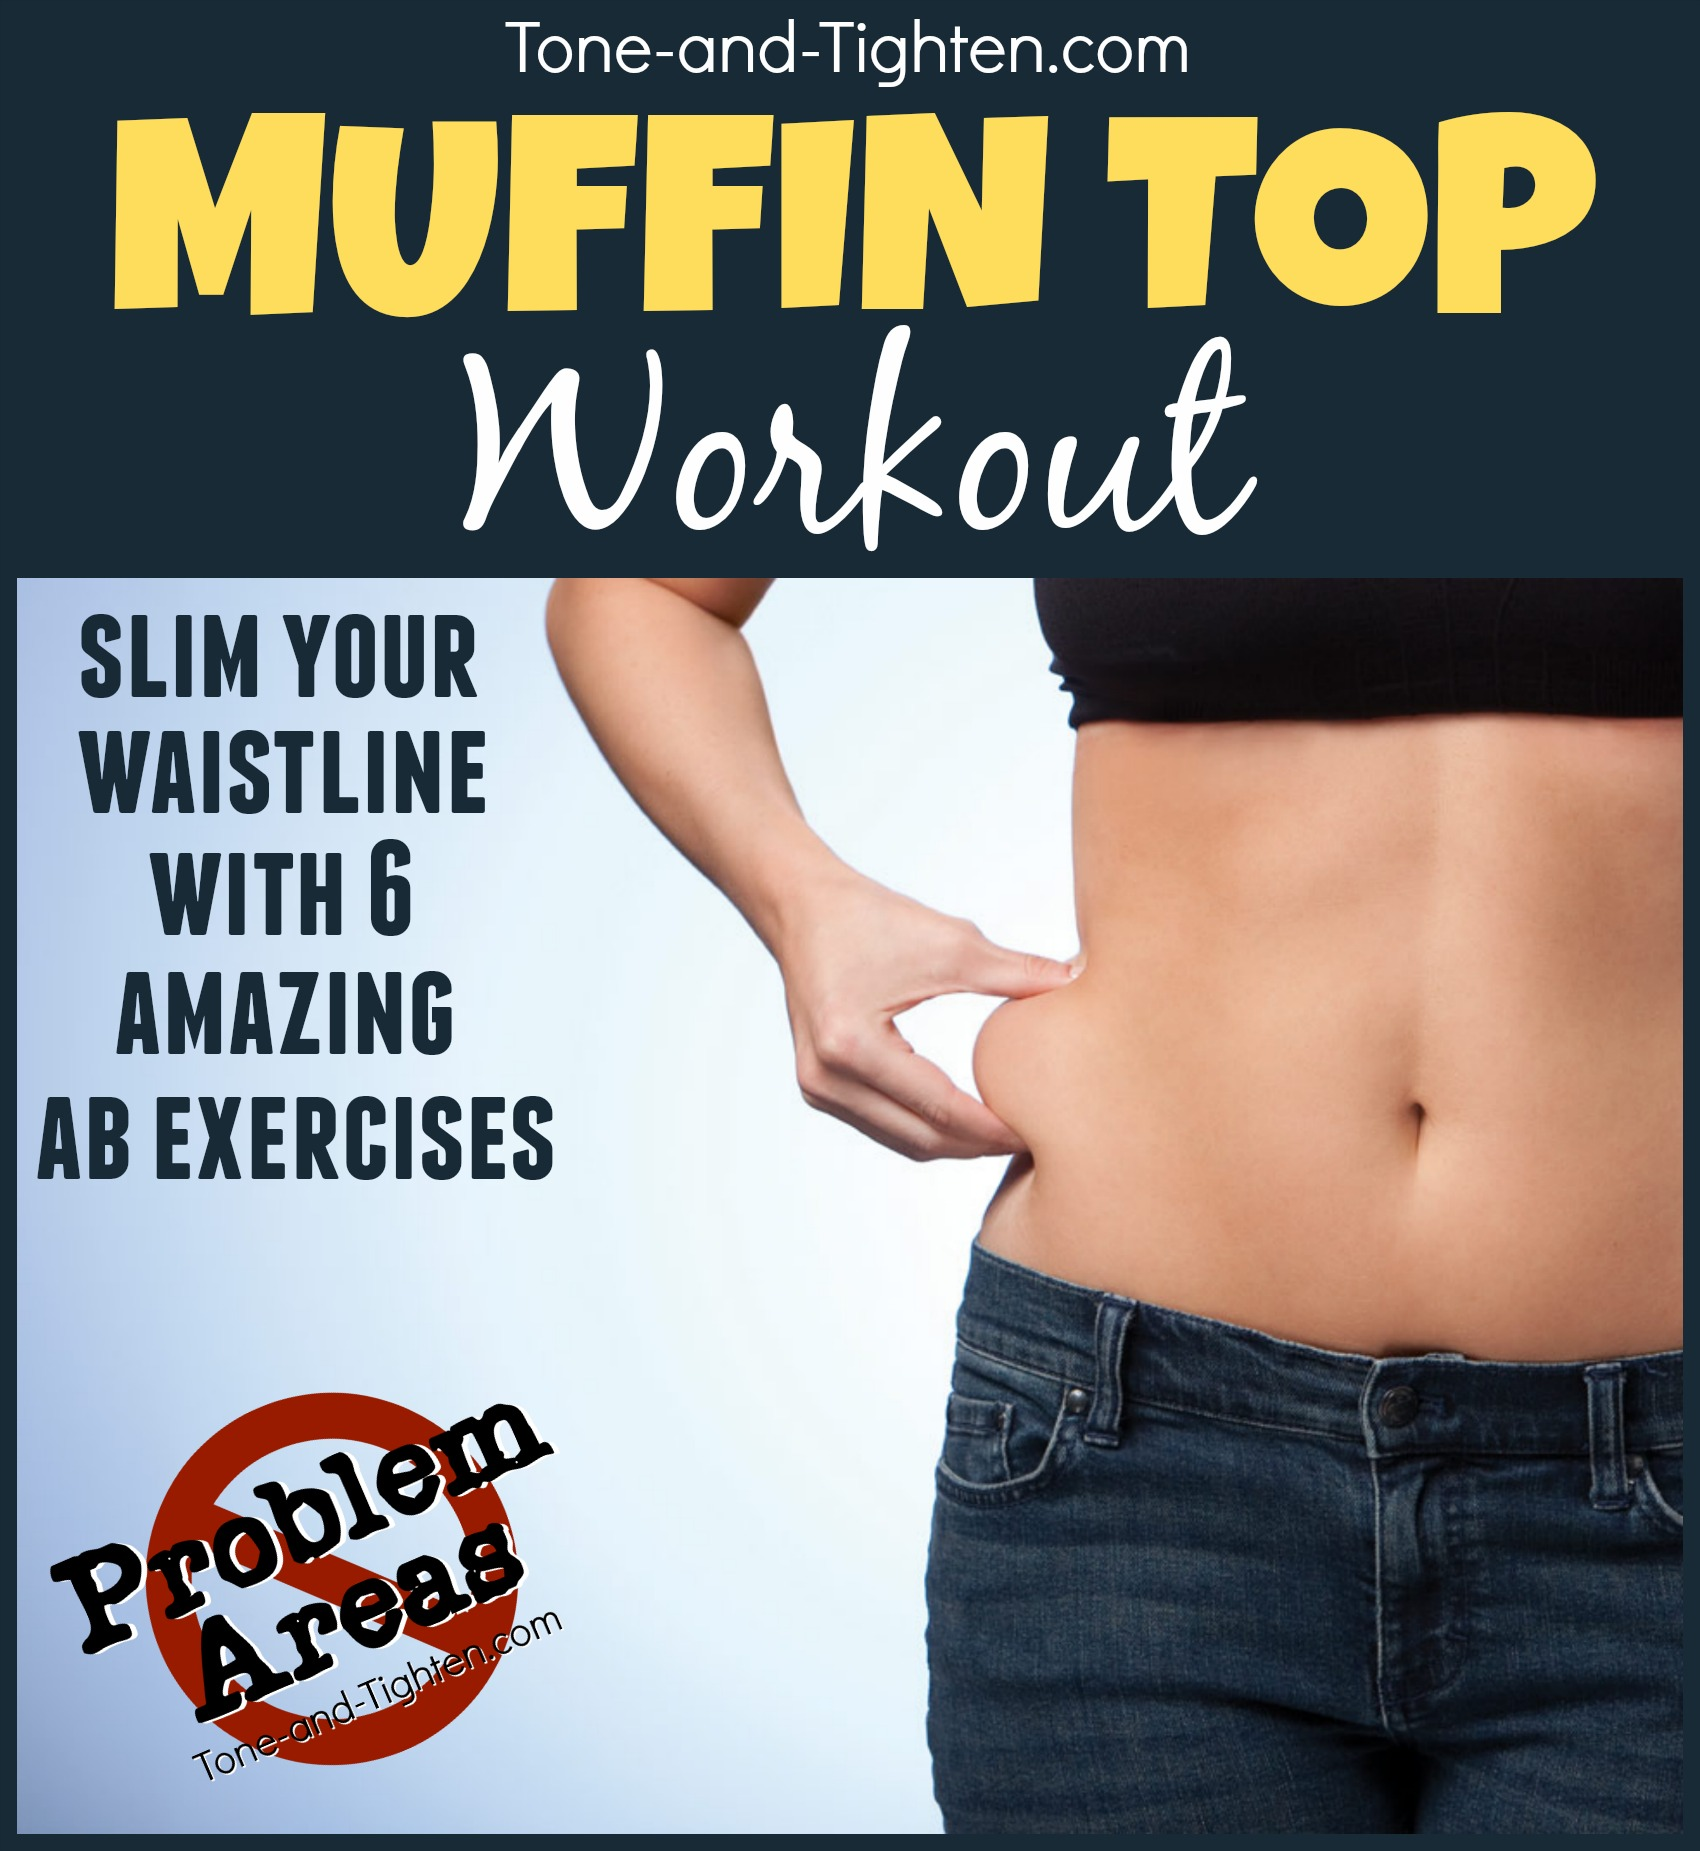 muffin-top-workout-exercise-how-to-lose-get-rid-of-ab-abdominal-tone-and-tighten3